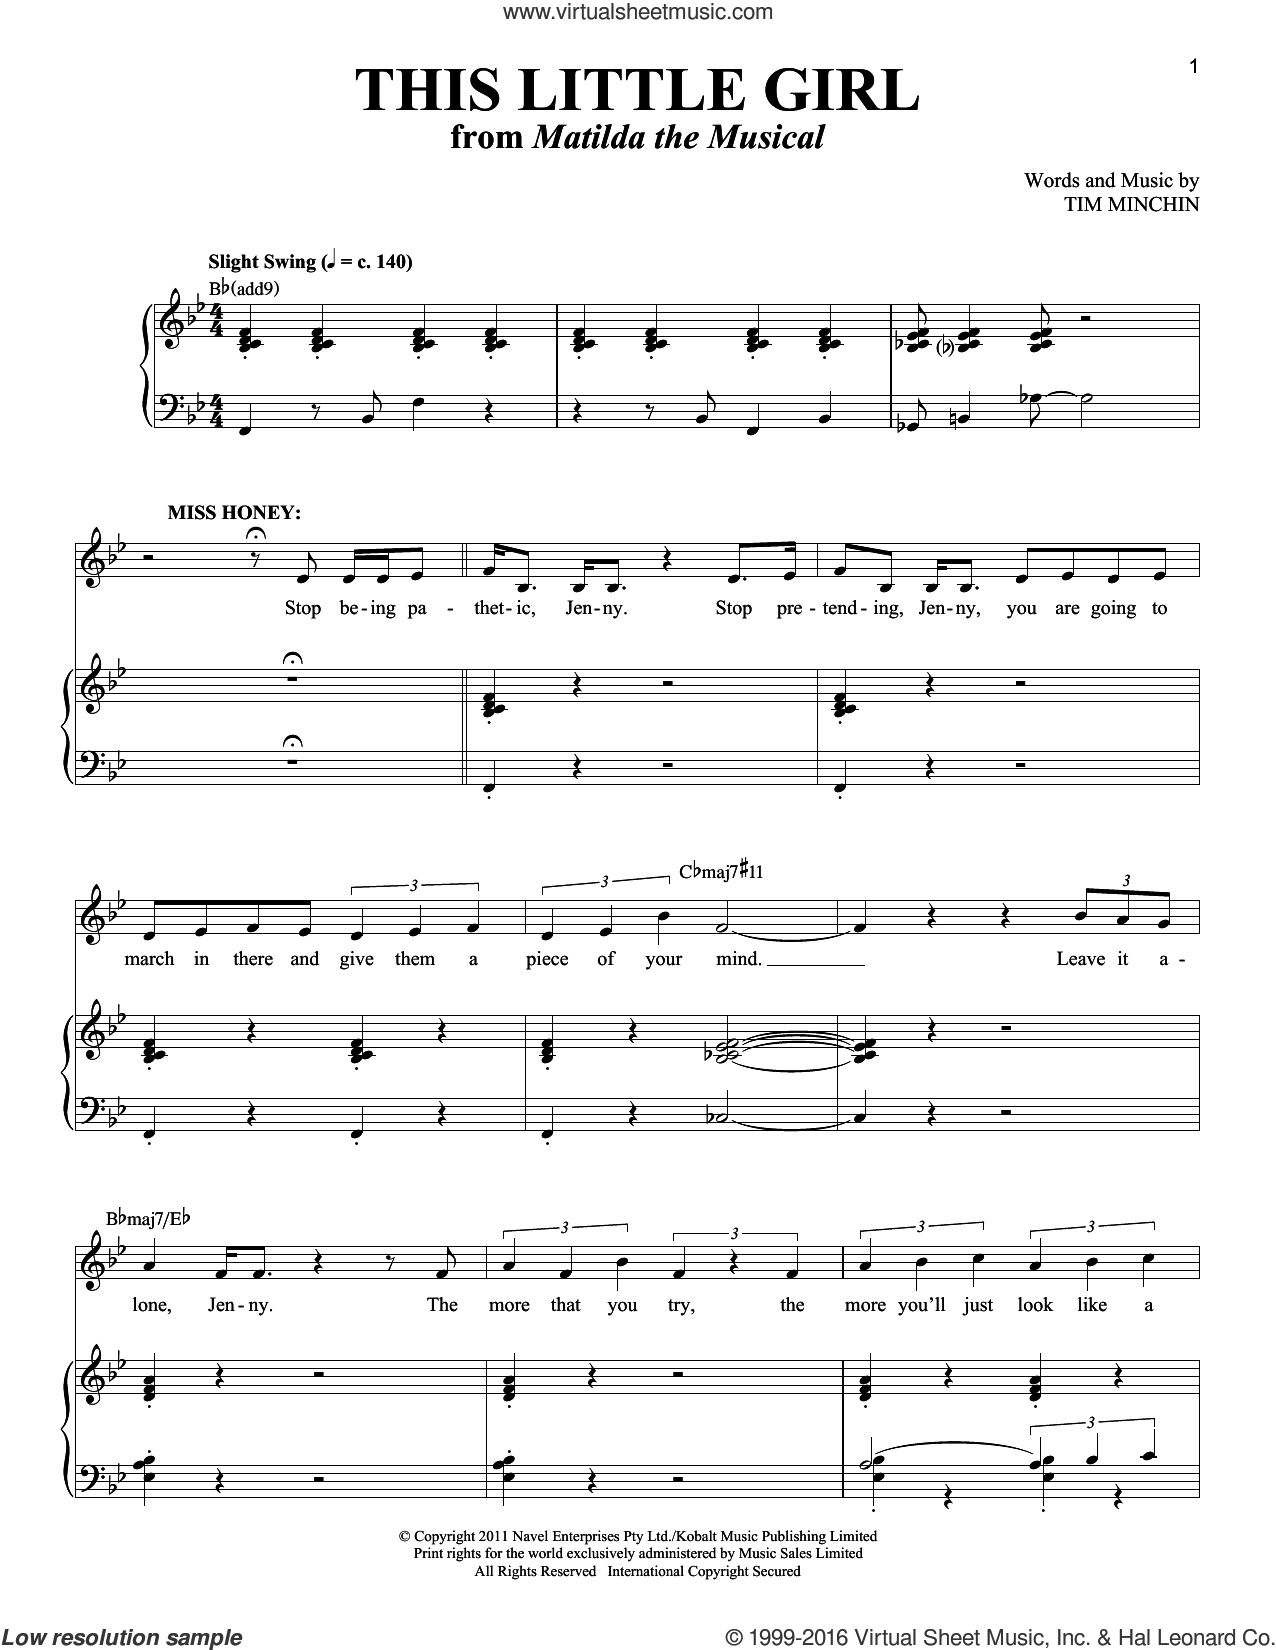 This Little Girl sheet music for voice and piano by Tim Minchin